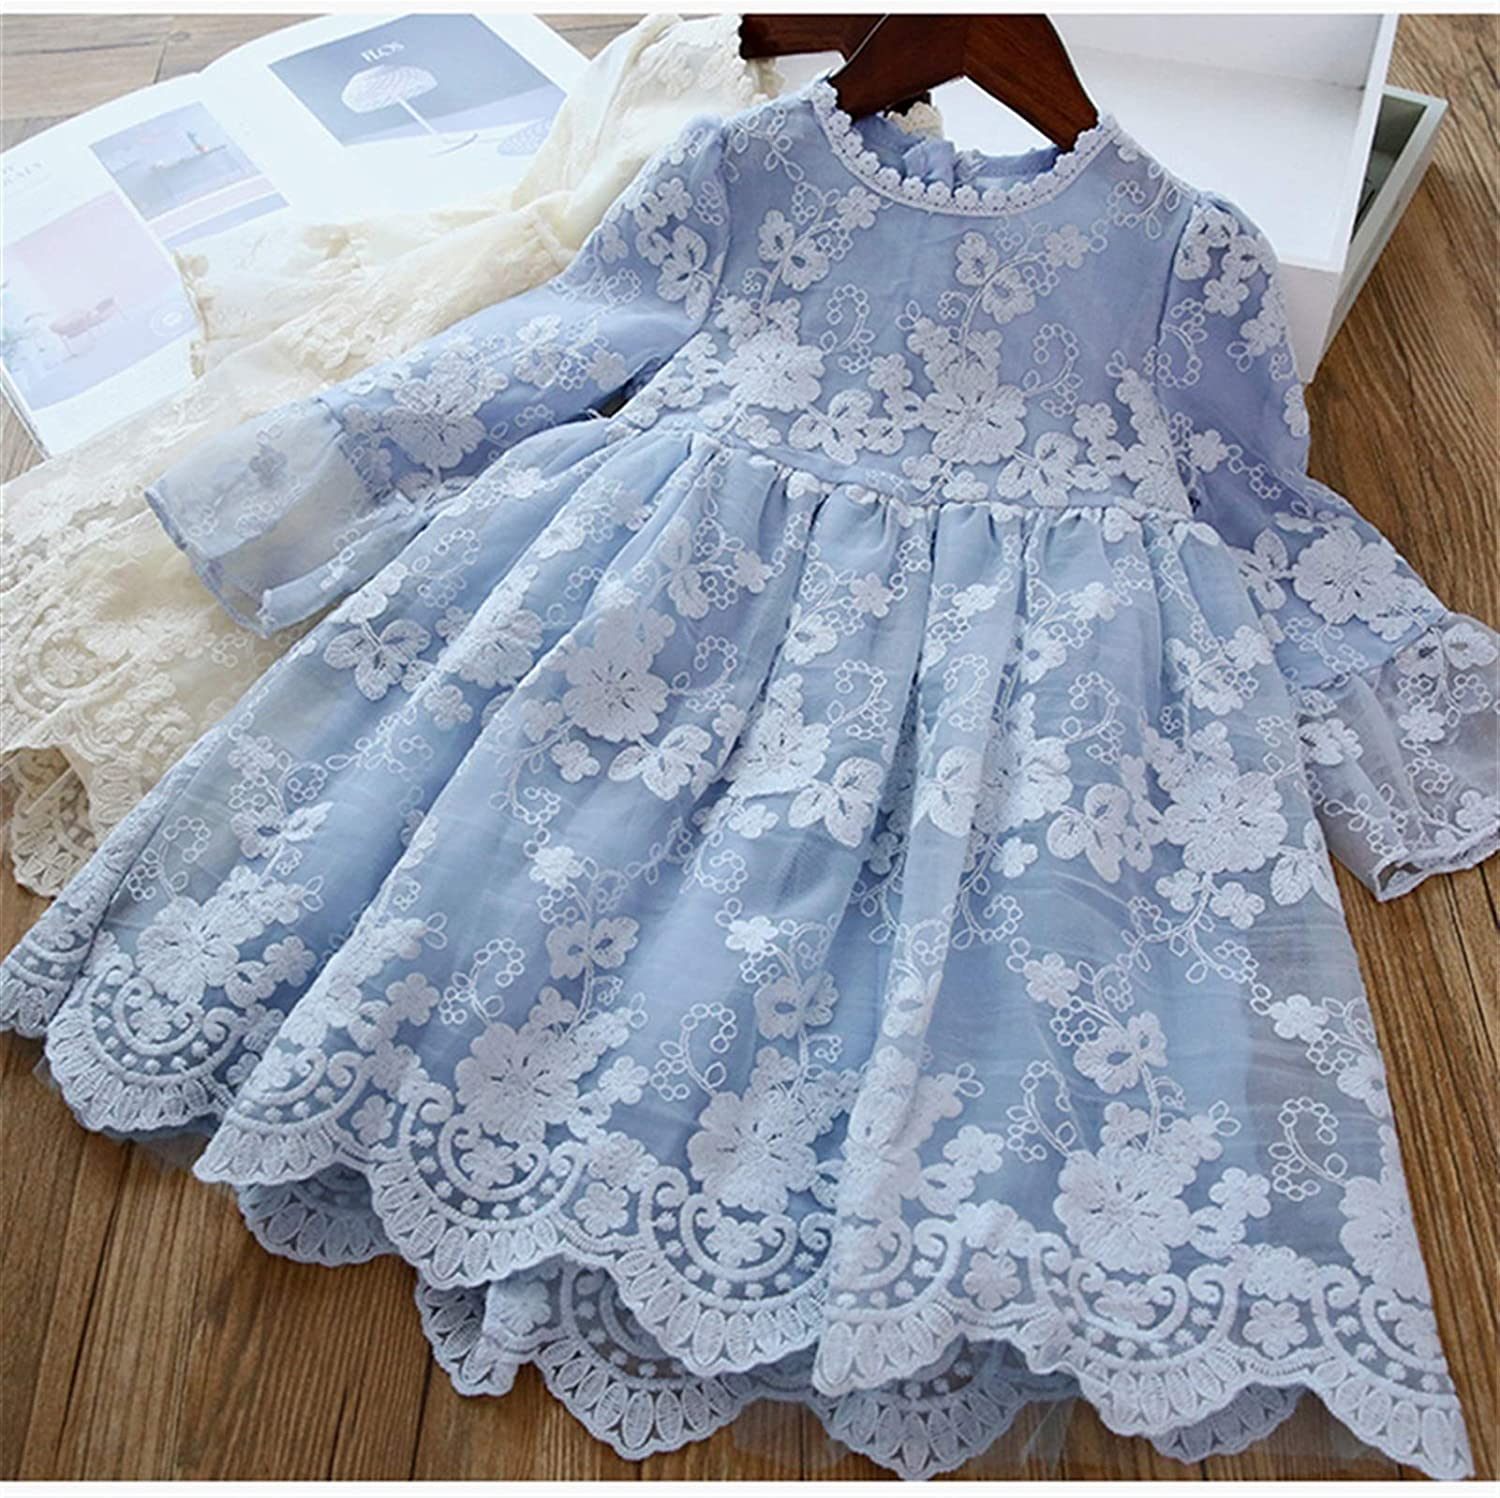 Comfortable and Exquisite Dress Princess Girls Dress Girls Clothes Children Clothing Summer Party Tutu Kids Dresses for Girls Toddler Girls Casual Dress 3 8T (Color : Style 9 Blue, Kid Size : 4T)